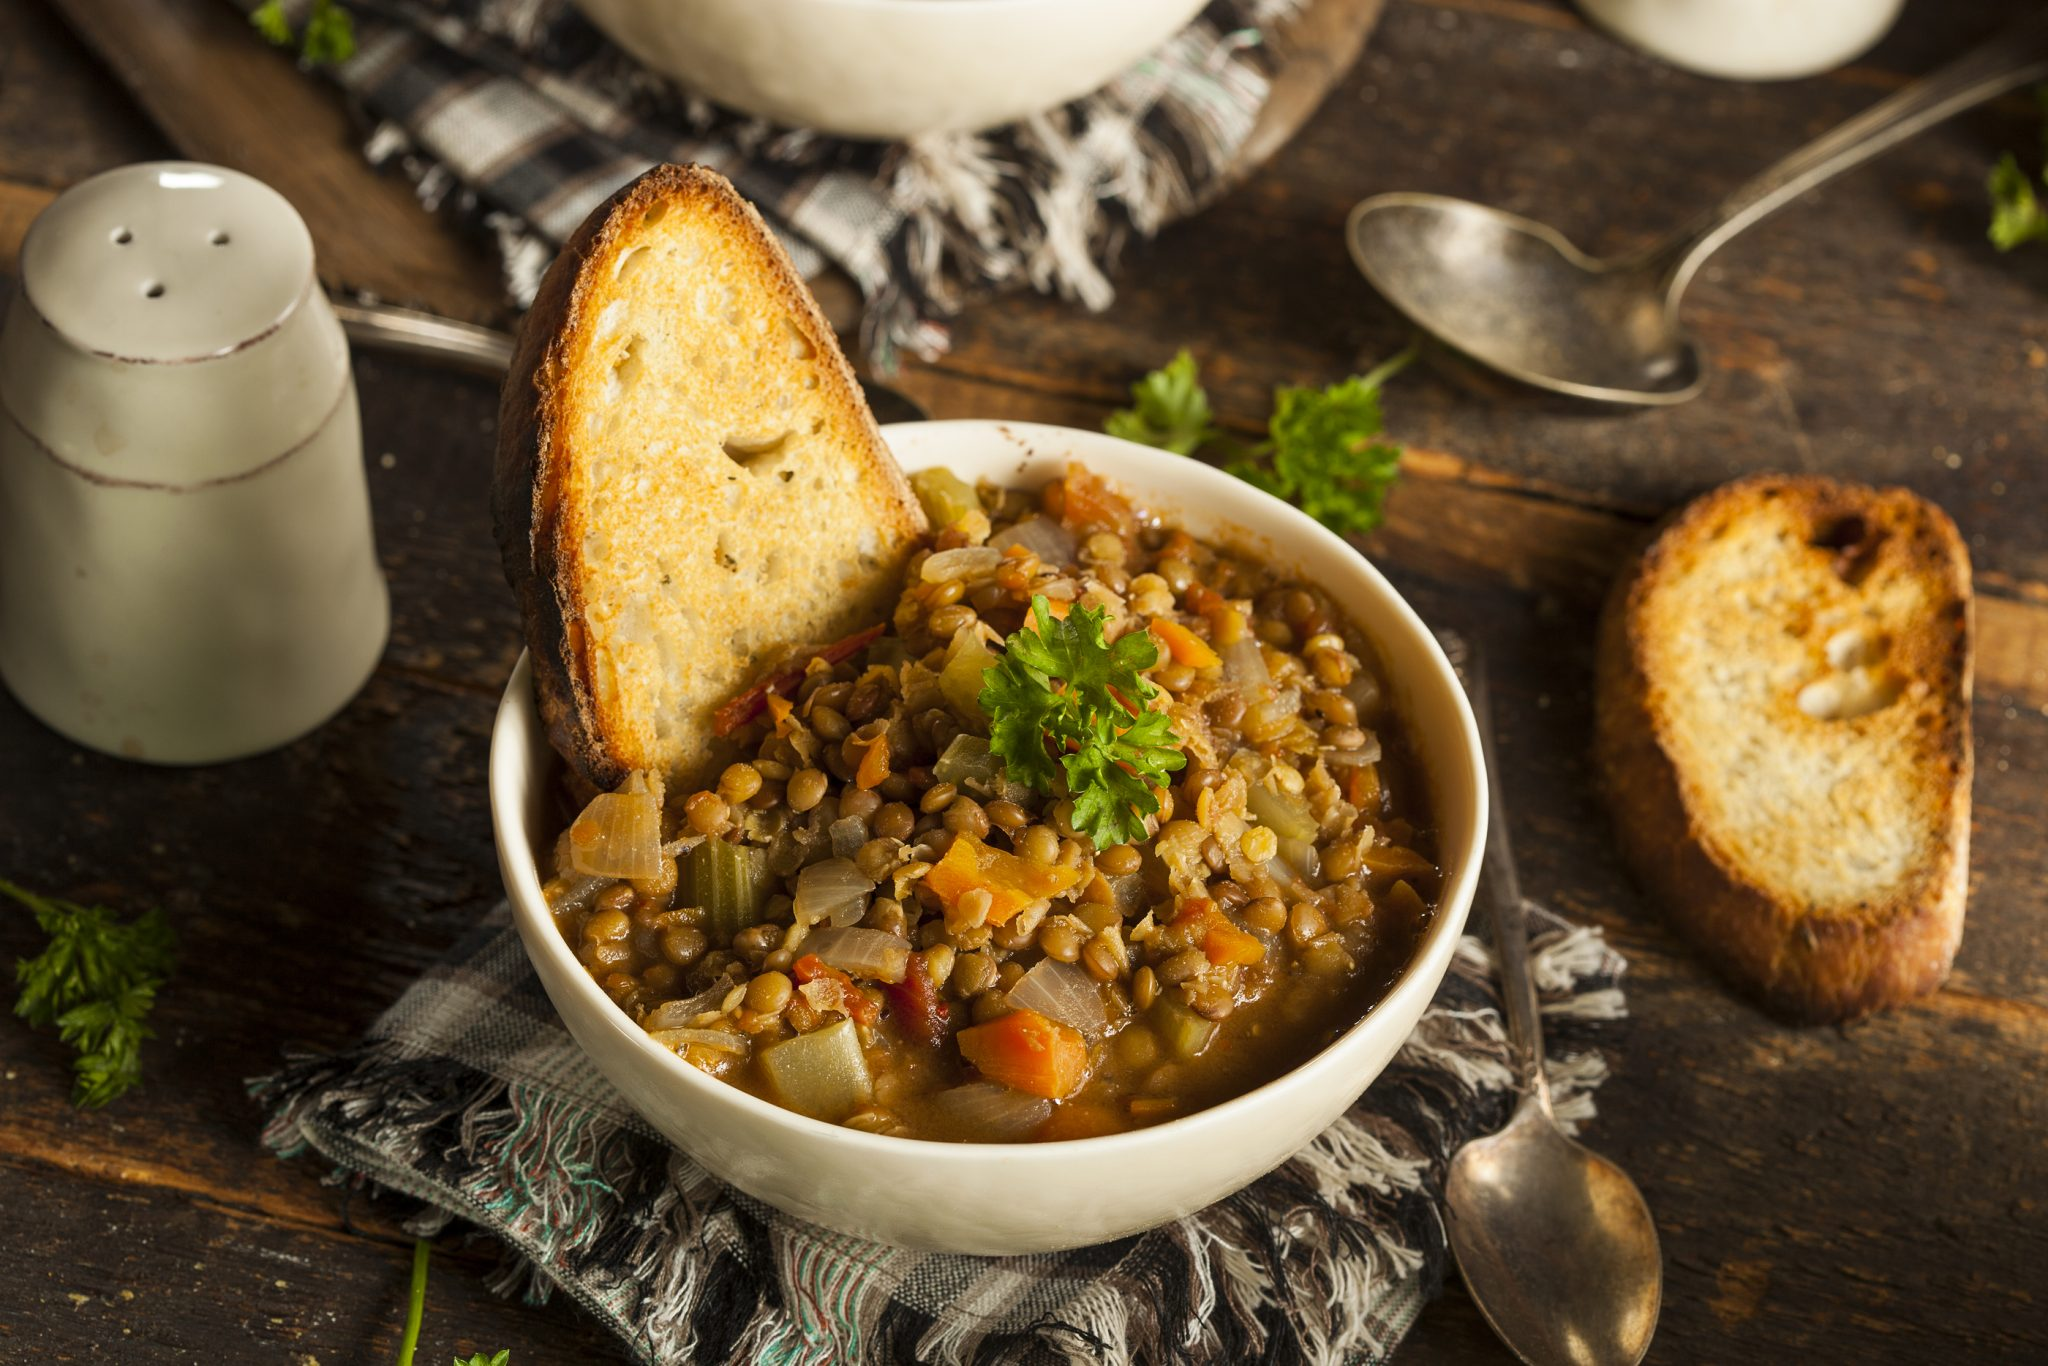 Spinach and Lentil Soup – a Delicious Meatless Meal